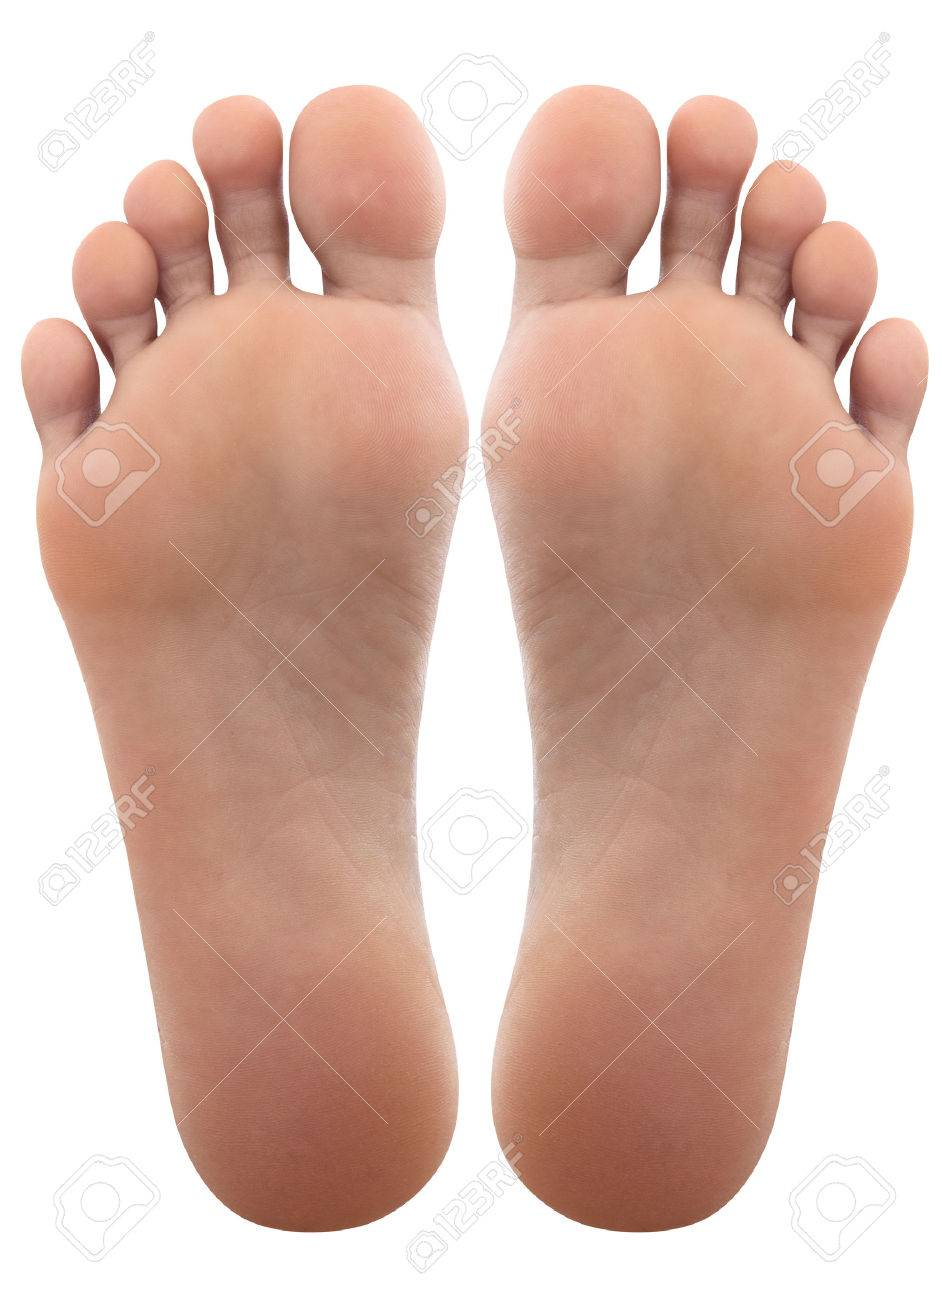 close up of female feet stock photo, picture and royalty free image